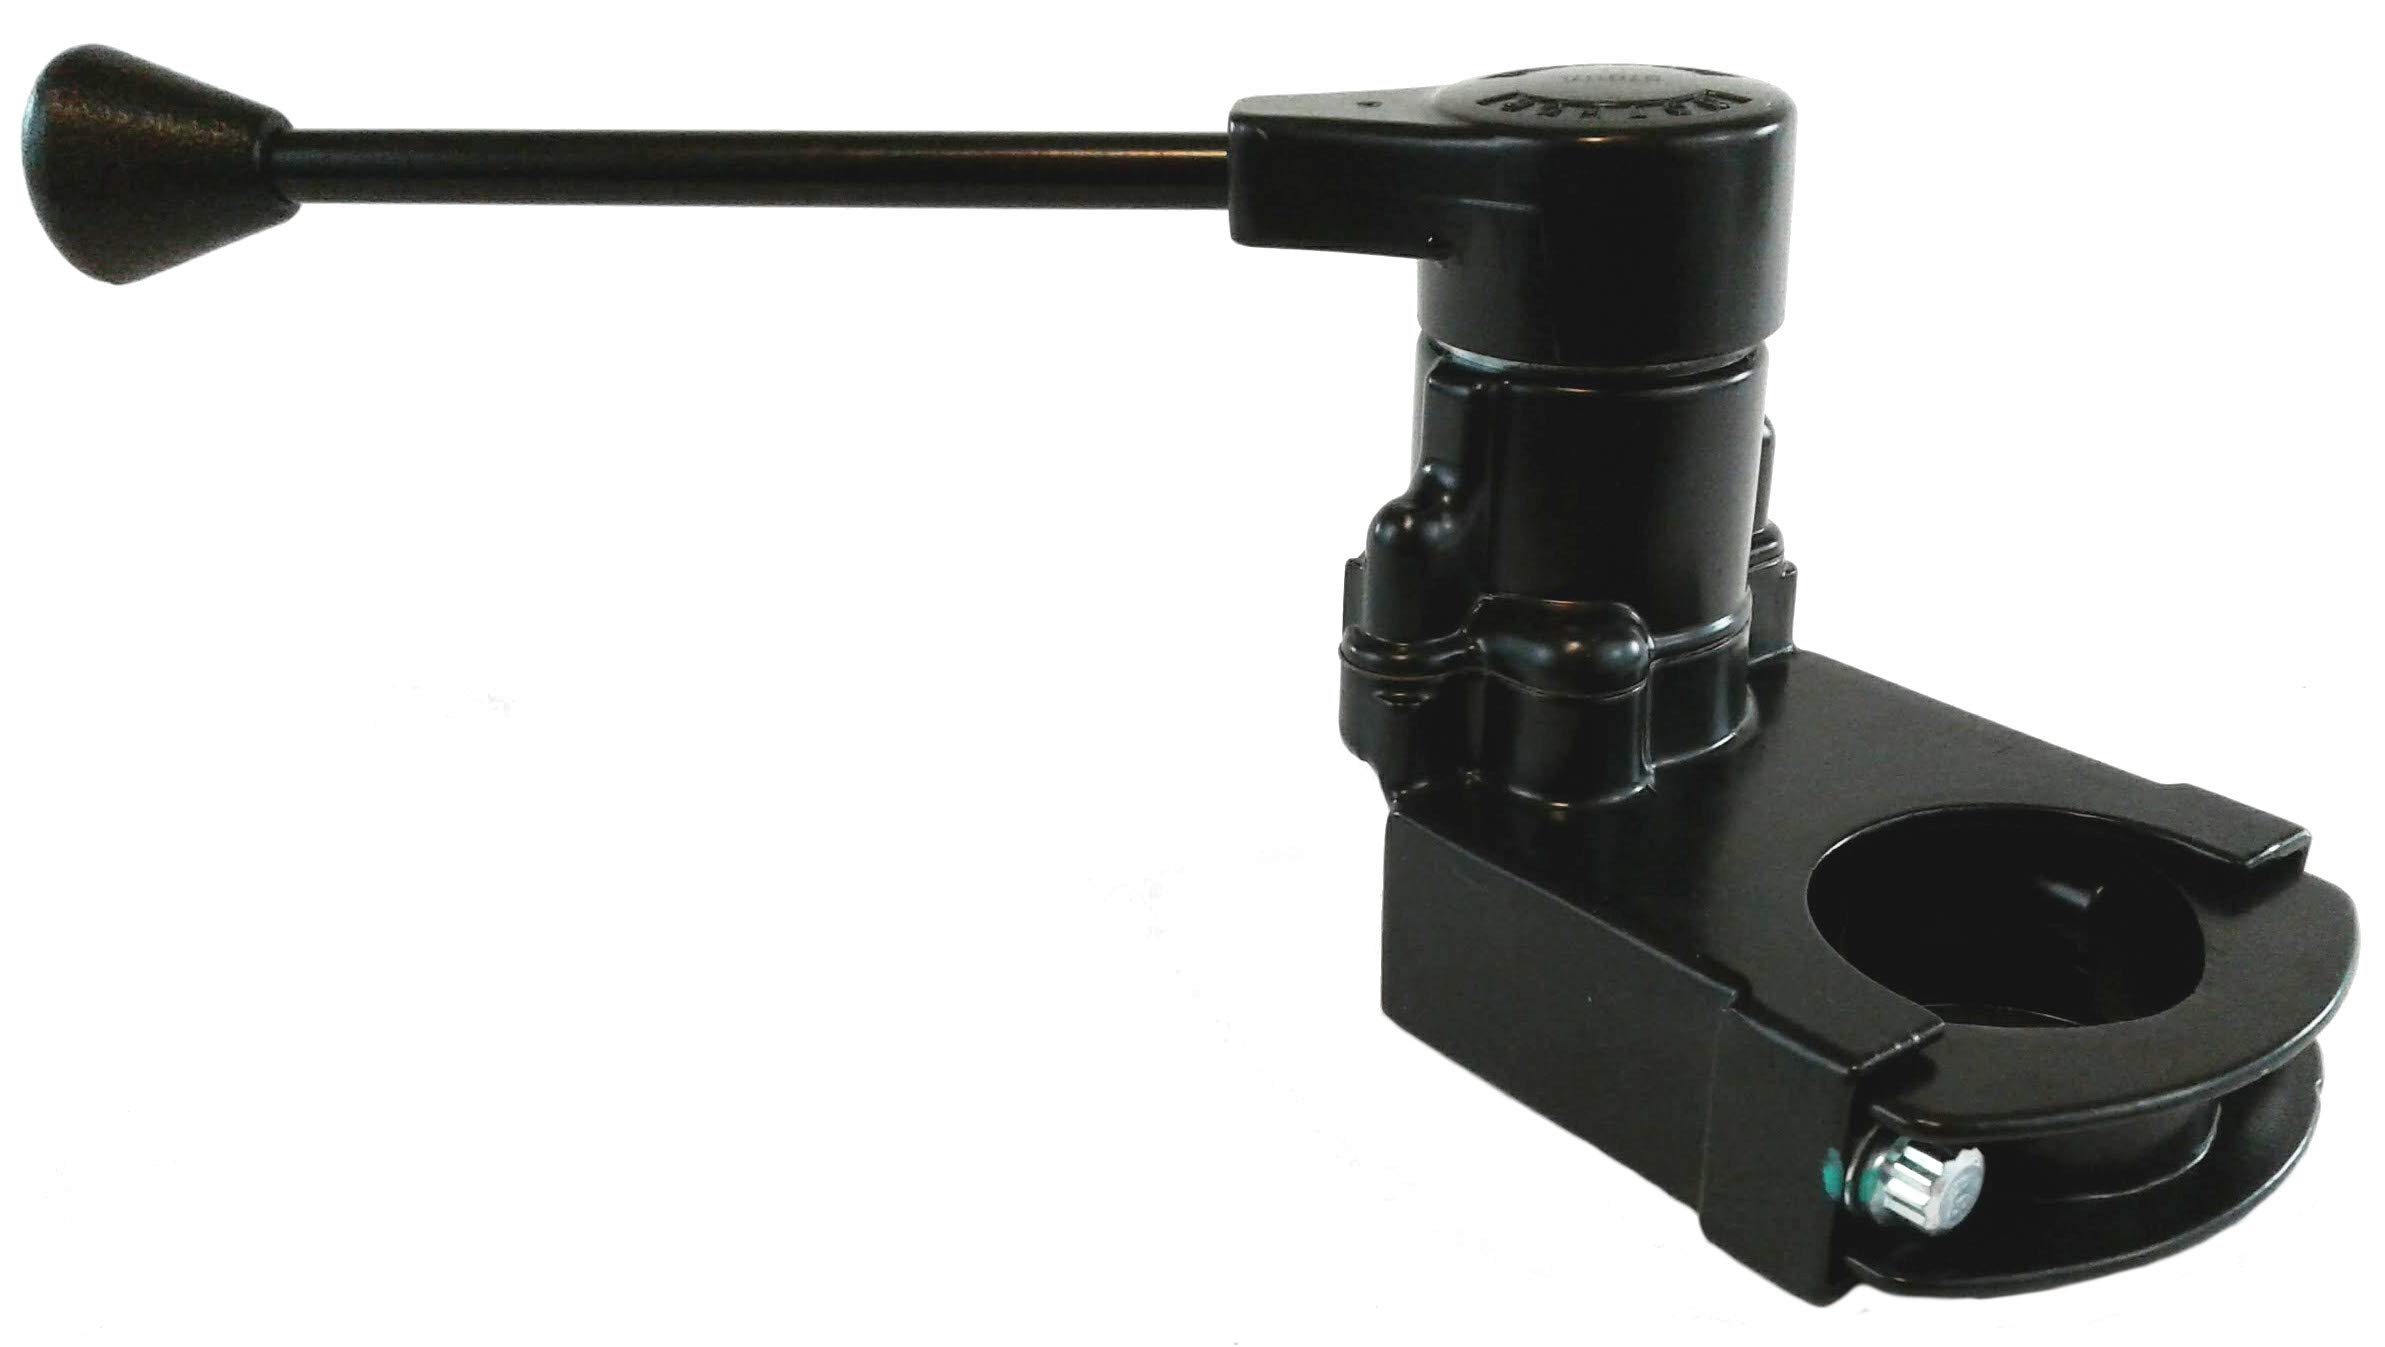 Steering Column Mounted Hand Operated Trailer Brake Control Valve with Handle for Heavy Duty Big Rigs